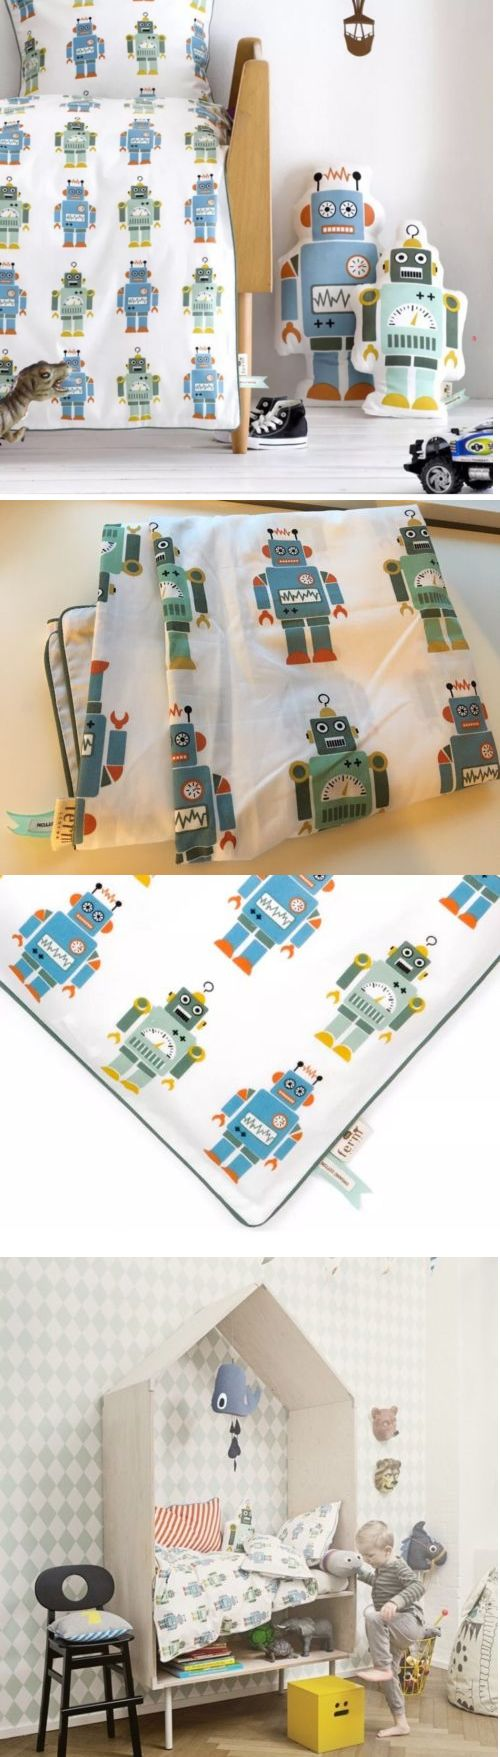 Duvet Covers and Sets 134278: Ferm Living Robot Toddler Duvet Cover 100% Organic Cotton Nwot Boys Zip Closure -> BUY IT NOW ONLY: $54.95 on eBay!